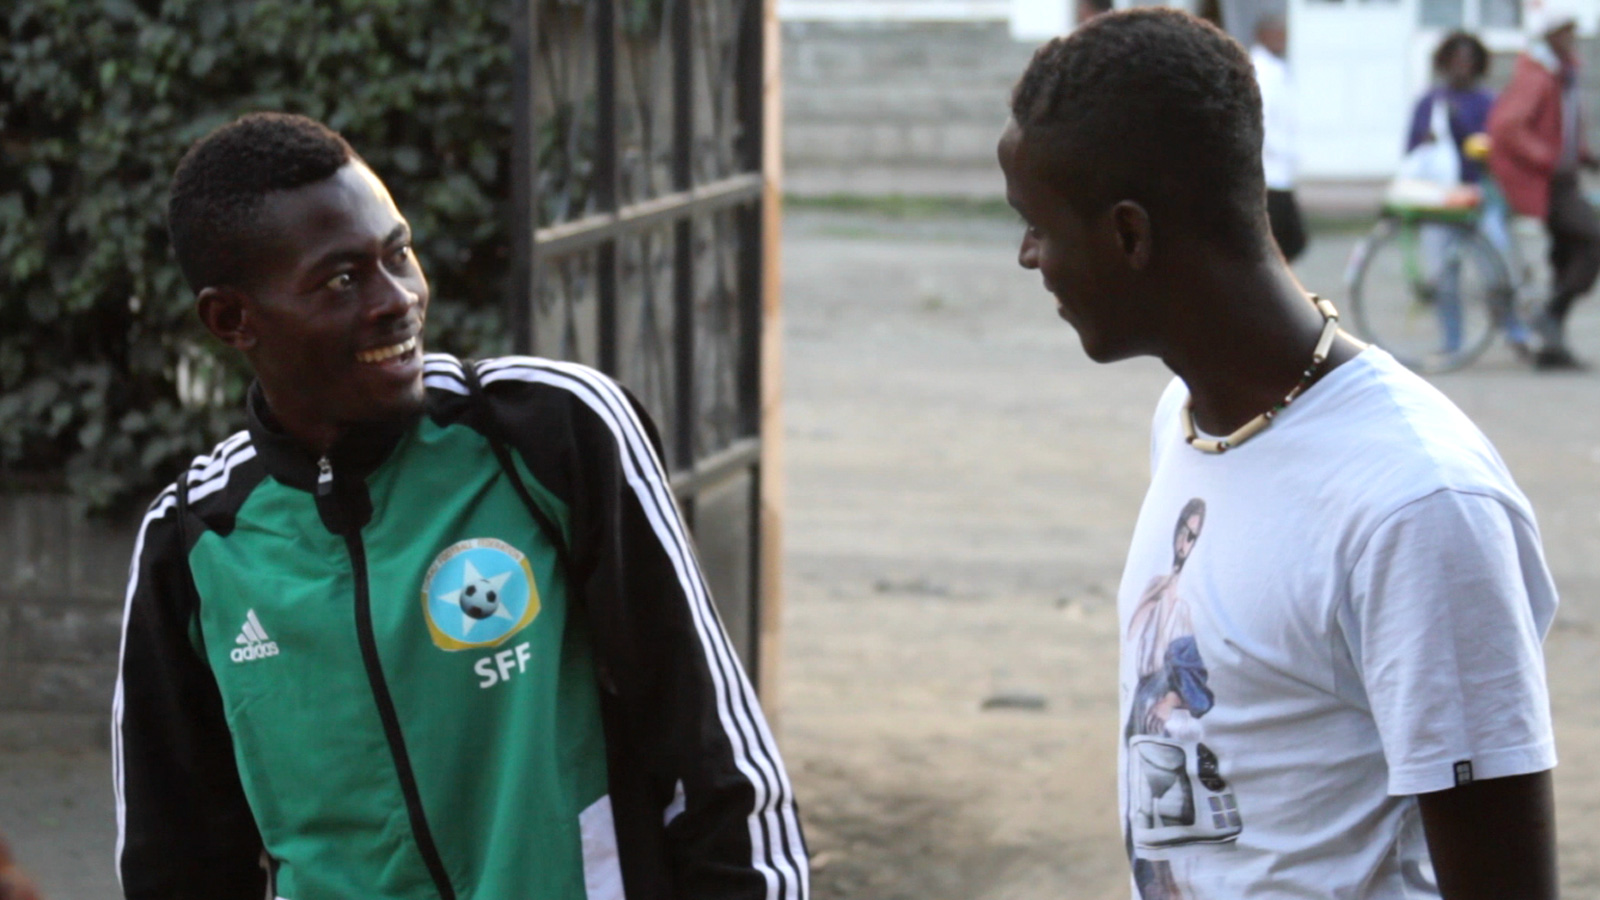 Sa'ad Hussein and Saadiq Mohammed in Nakuru, Kenya, at the CECAFA Cup tournament in December 2013.